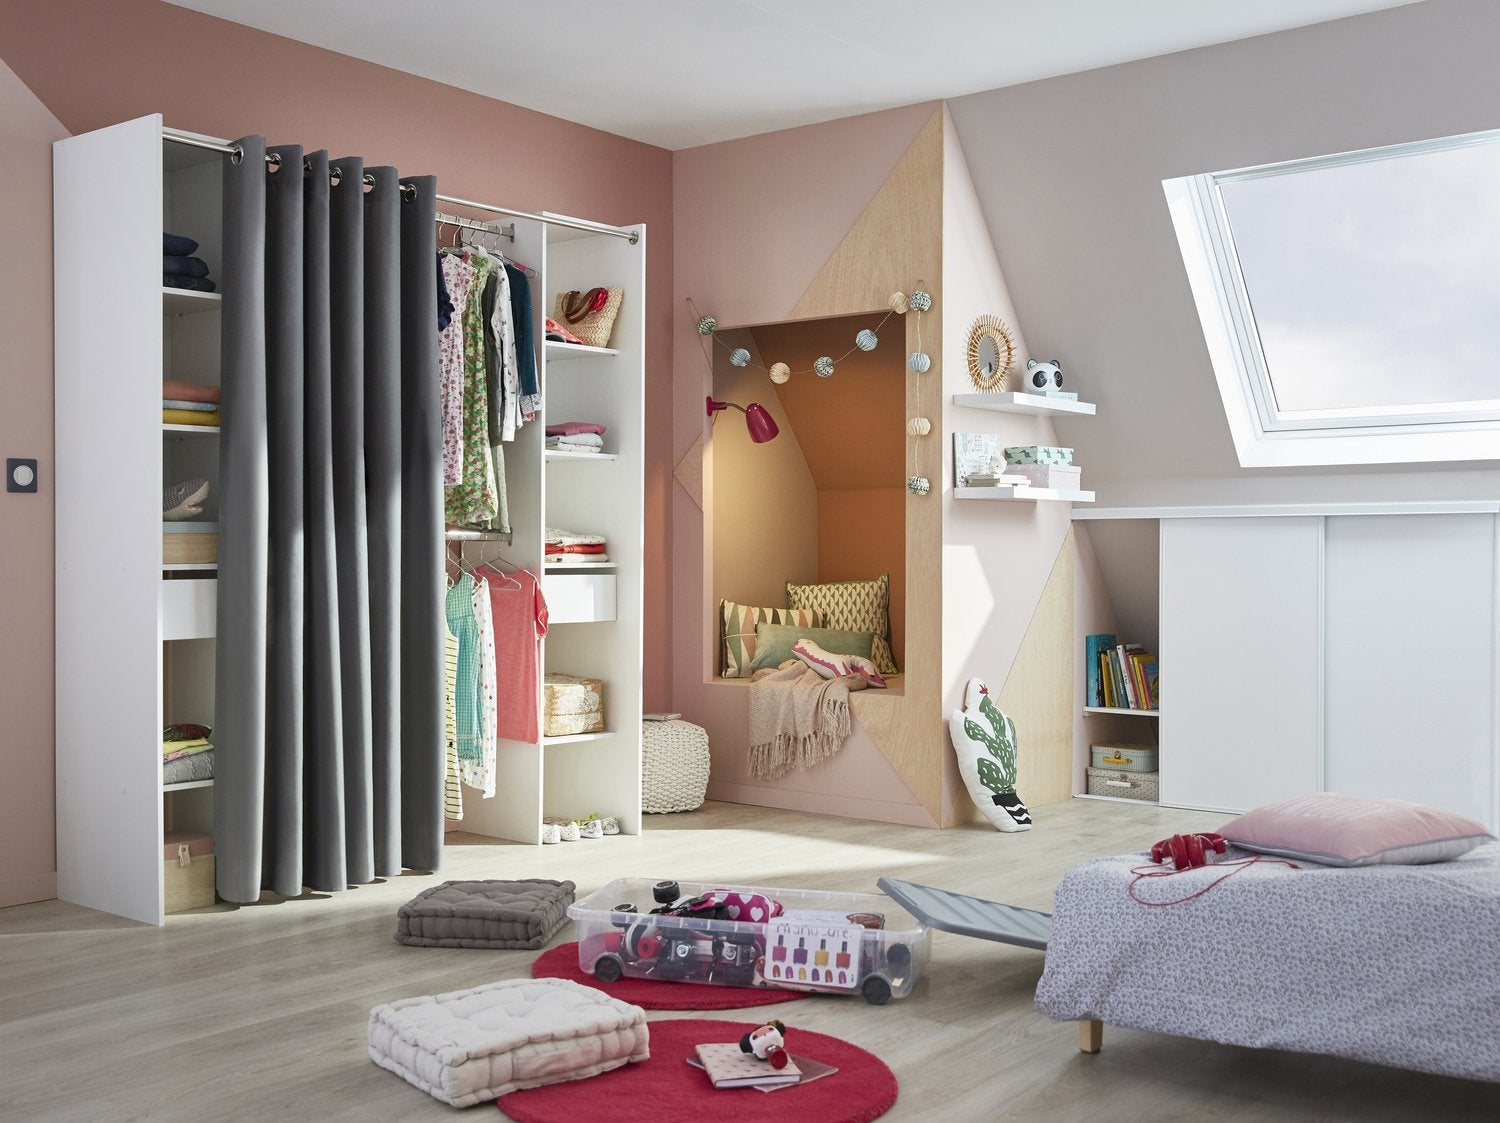 du rangement pour la chambre enfant leroy merlin. Black Bedroom Furniture Sets. Home Design Ideas